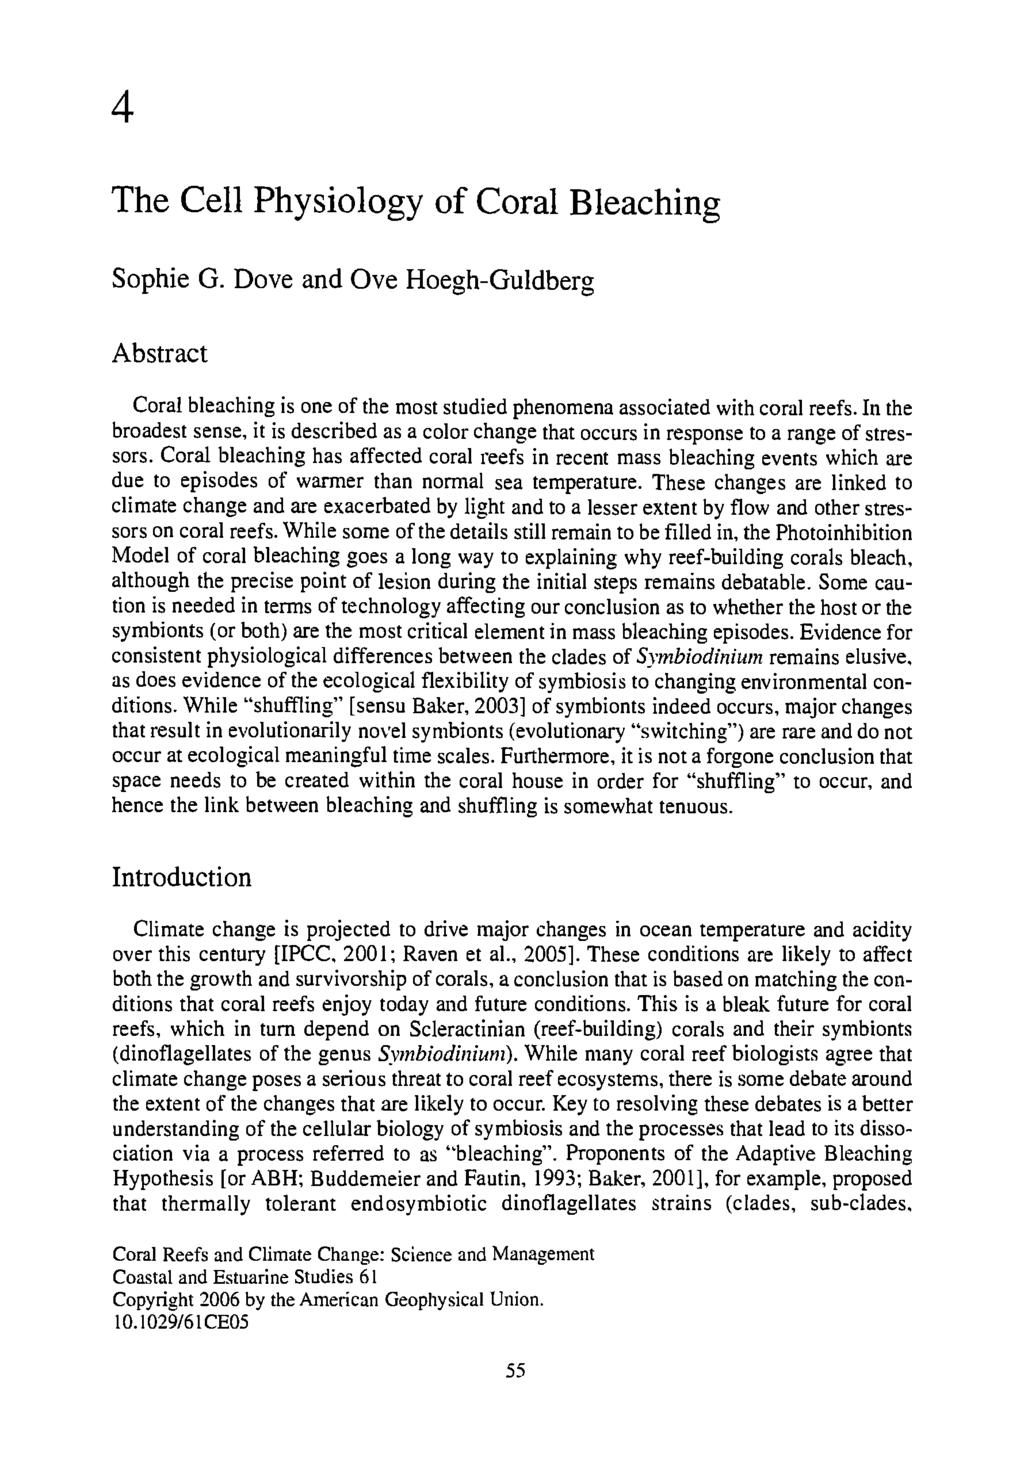 www.ebook777.com 4 The Cell Physiology of Coral Bleaching Sophie G. Dove and Ove Hoegh-Guldberg Abstract Coral bleaching is one of the most studied phenomena associated with coral reefs.